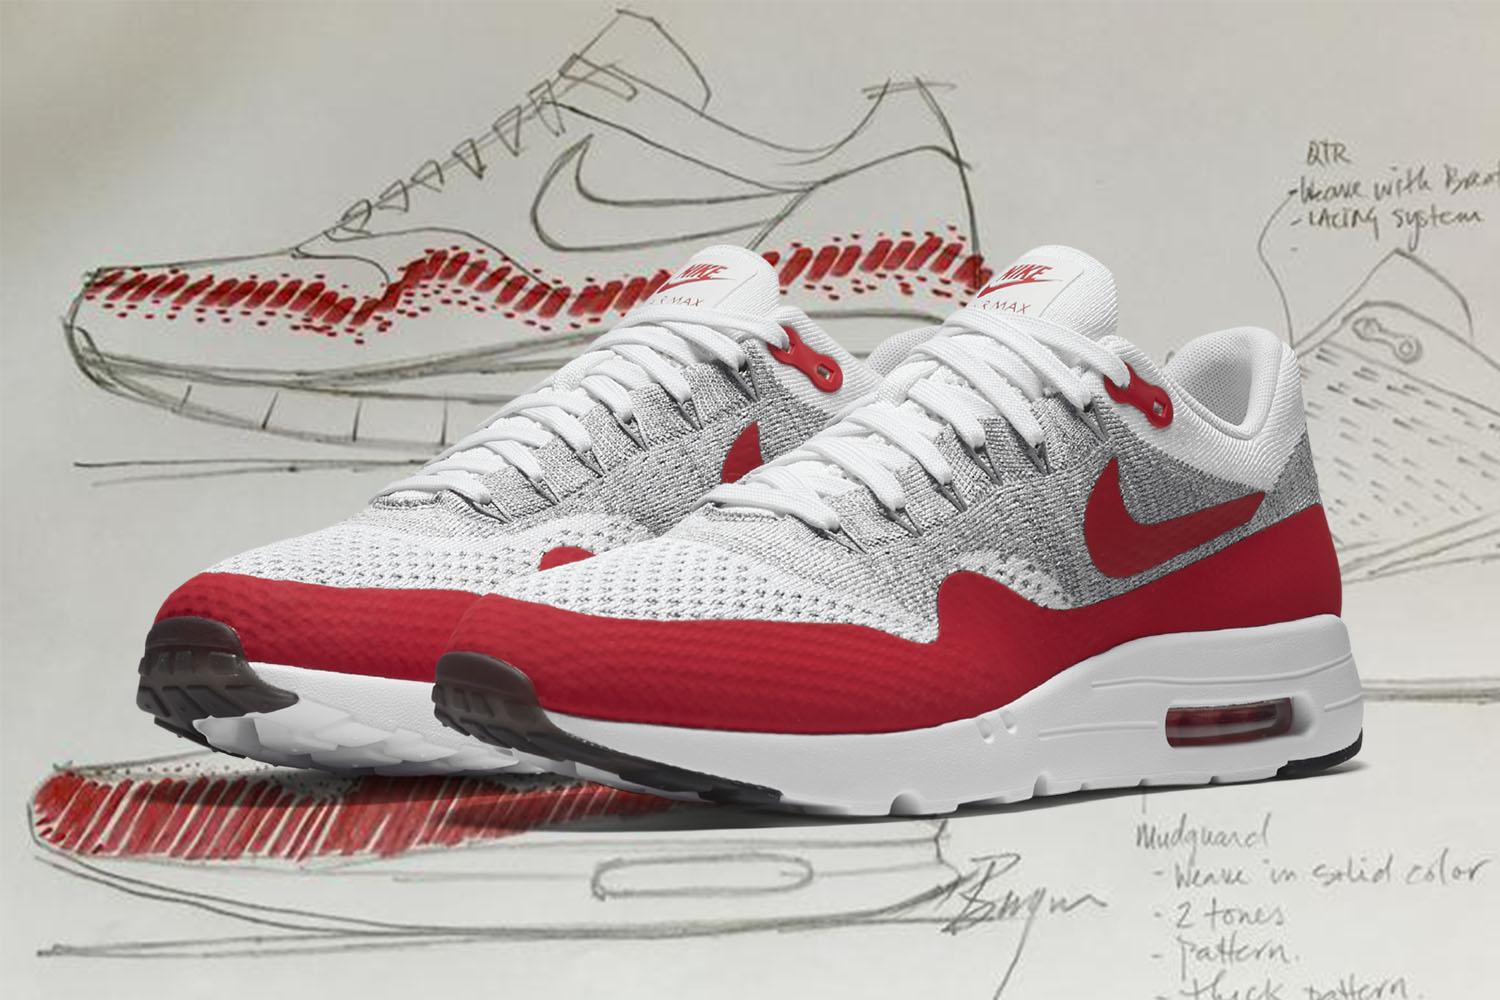 3e9588add276 NHBL - Nike Reconstruct The Iconic Air Max 1 with Ultra Flyknit